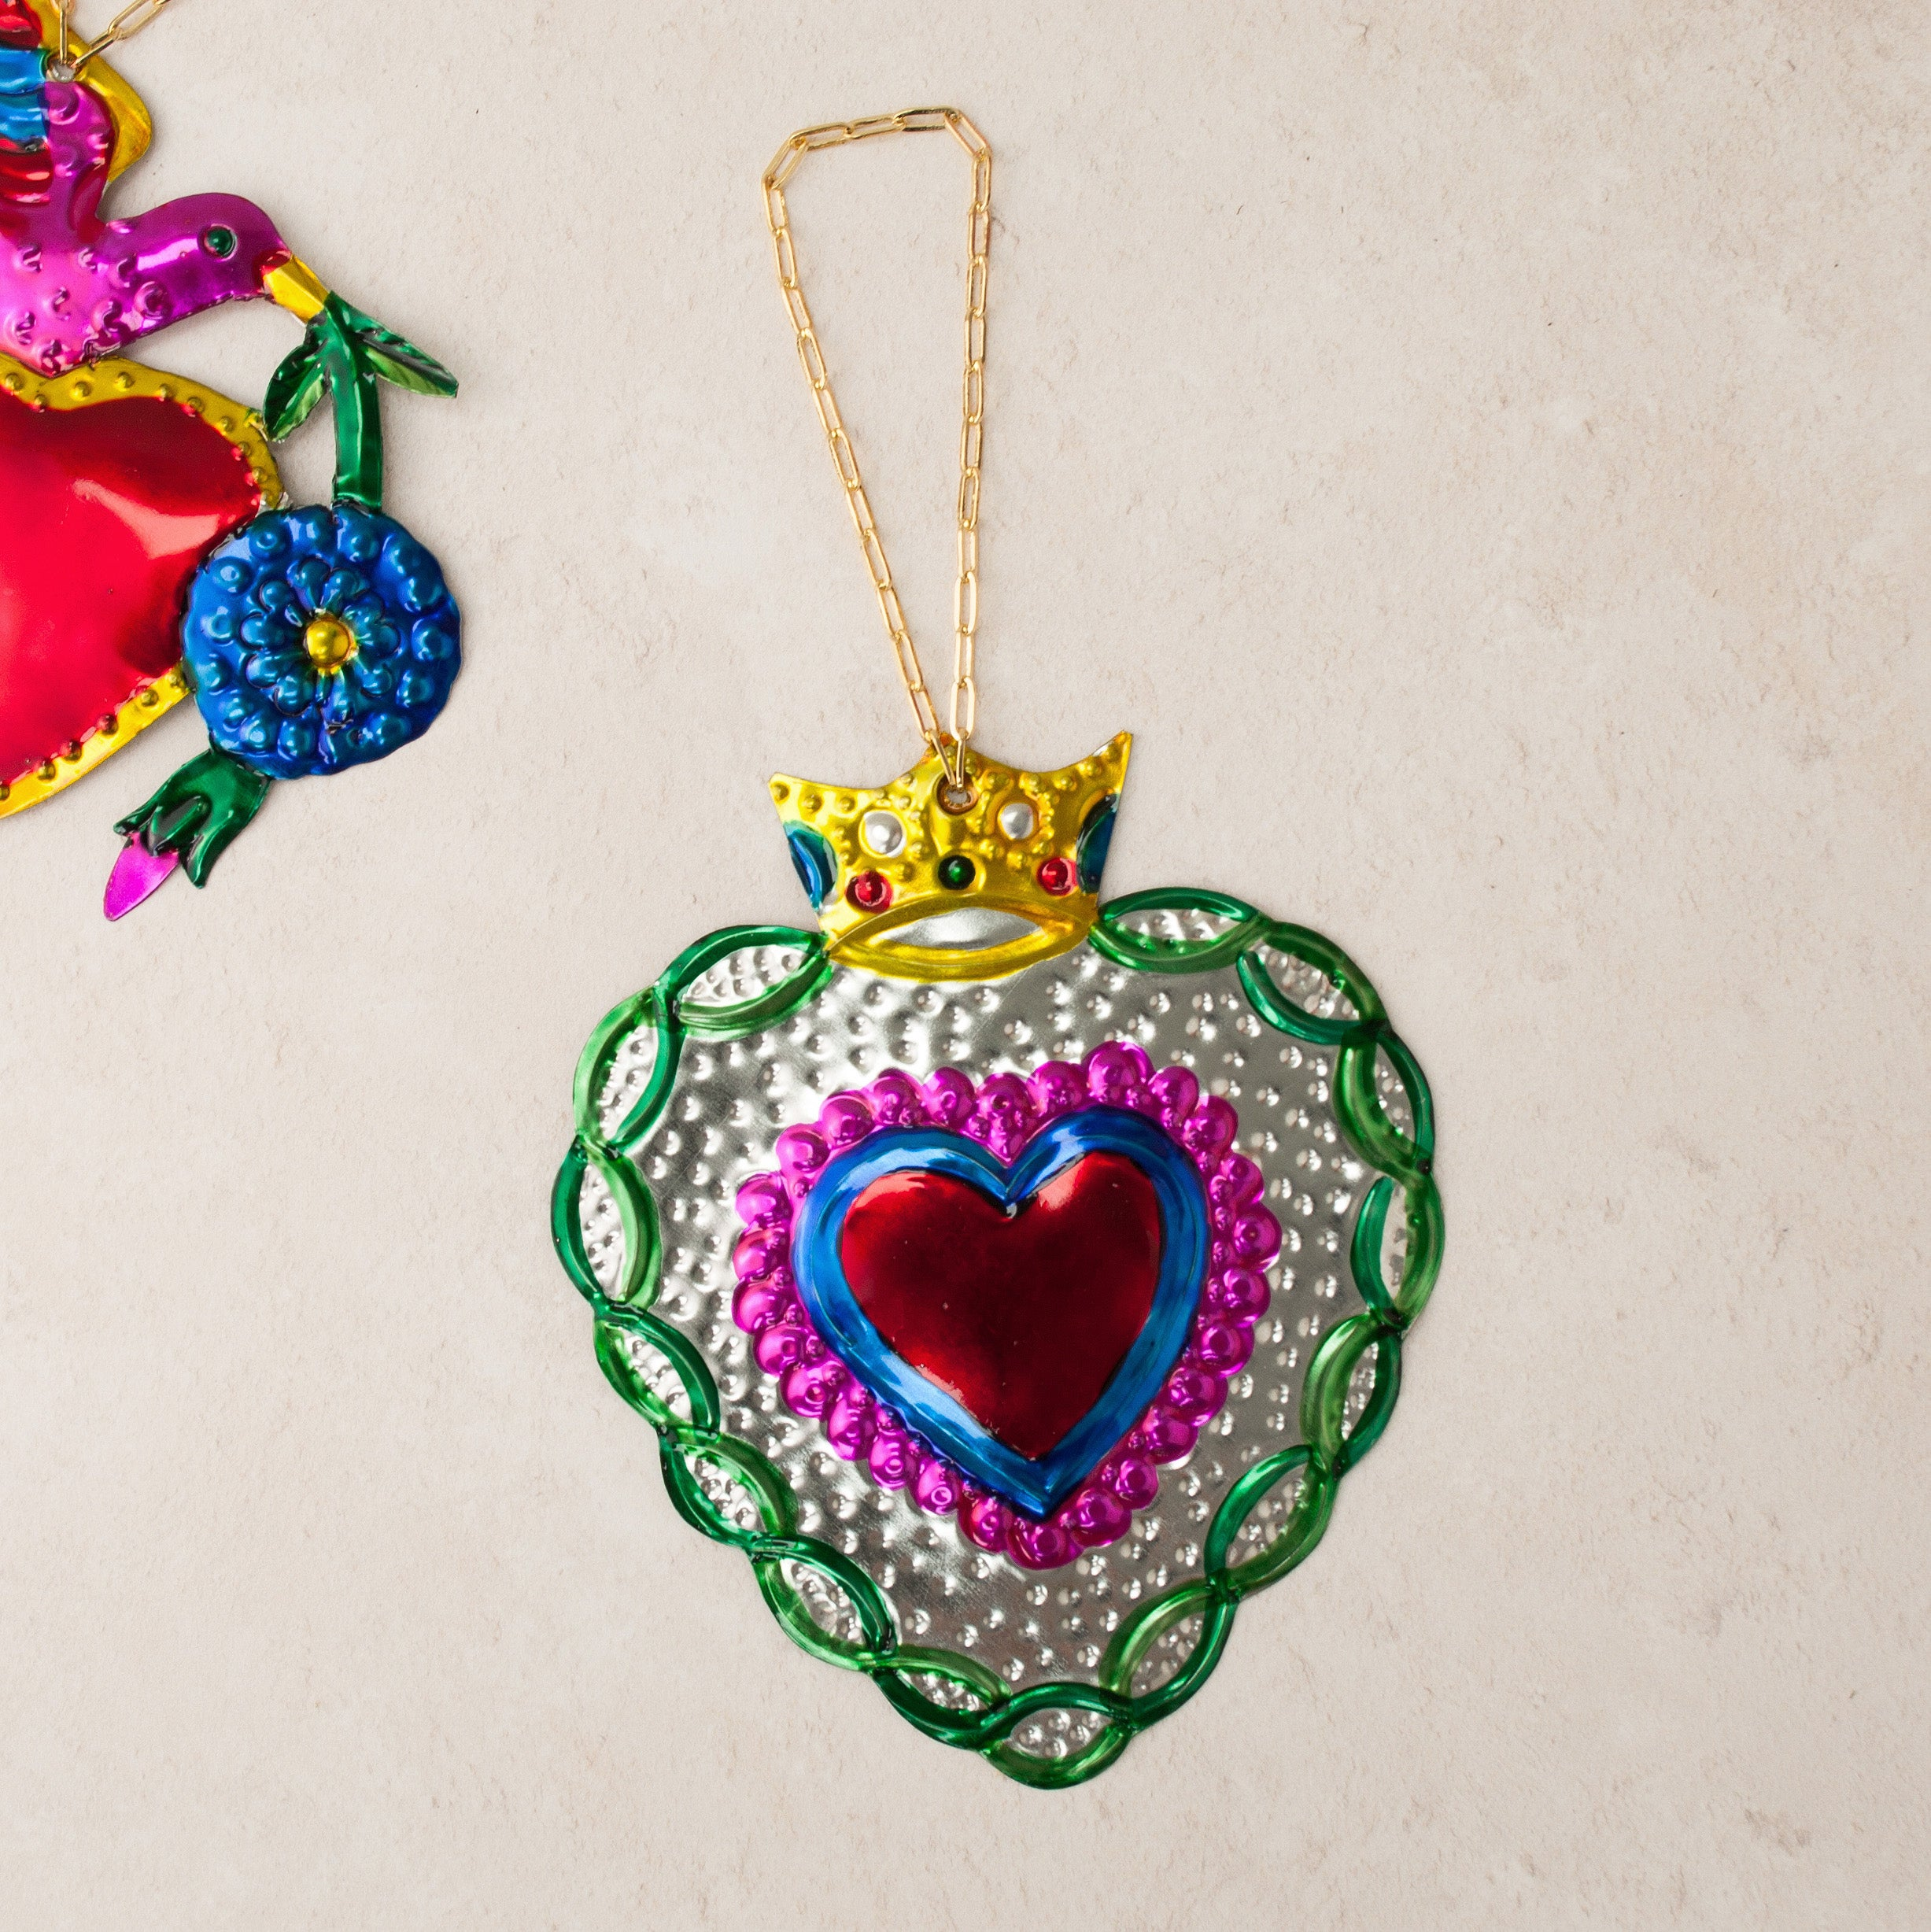 Image of Fancy Heart Hanging Ornament